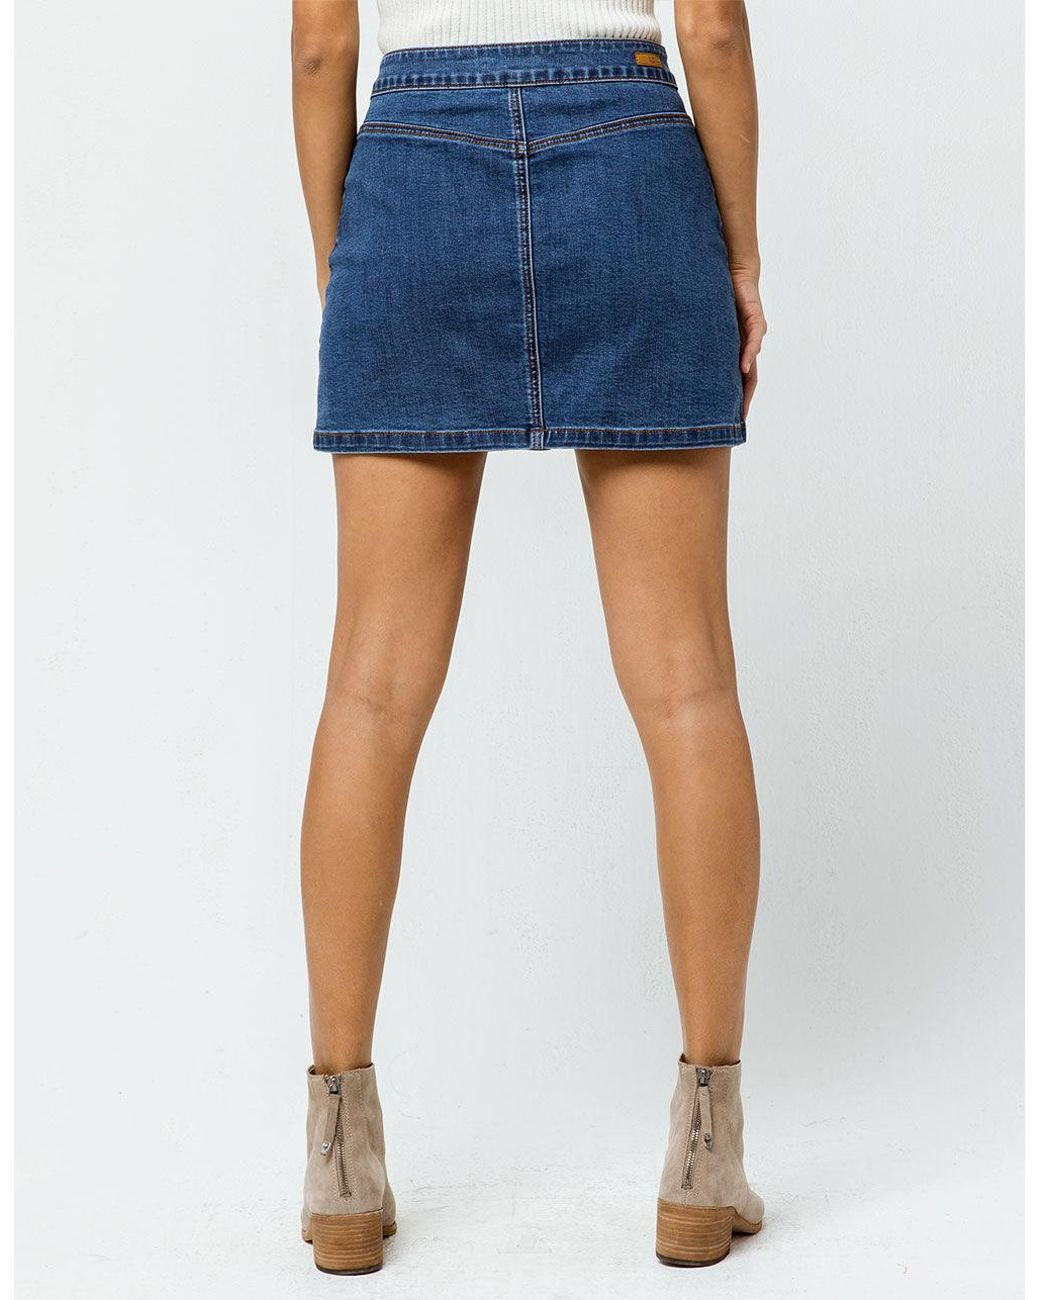 a38c18ab59 Jean Skirts At Ross